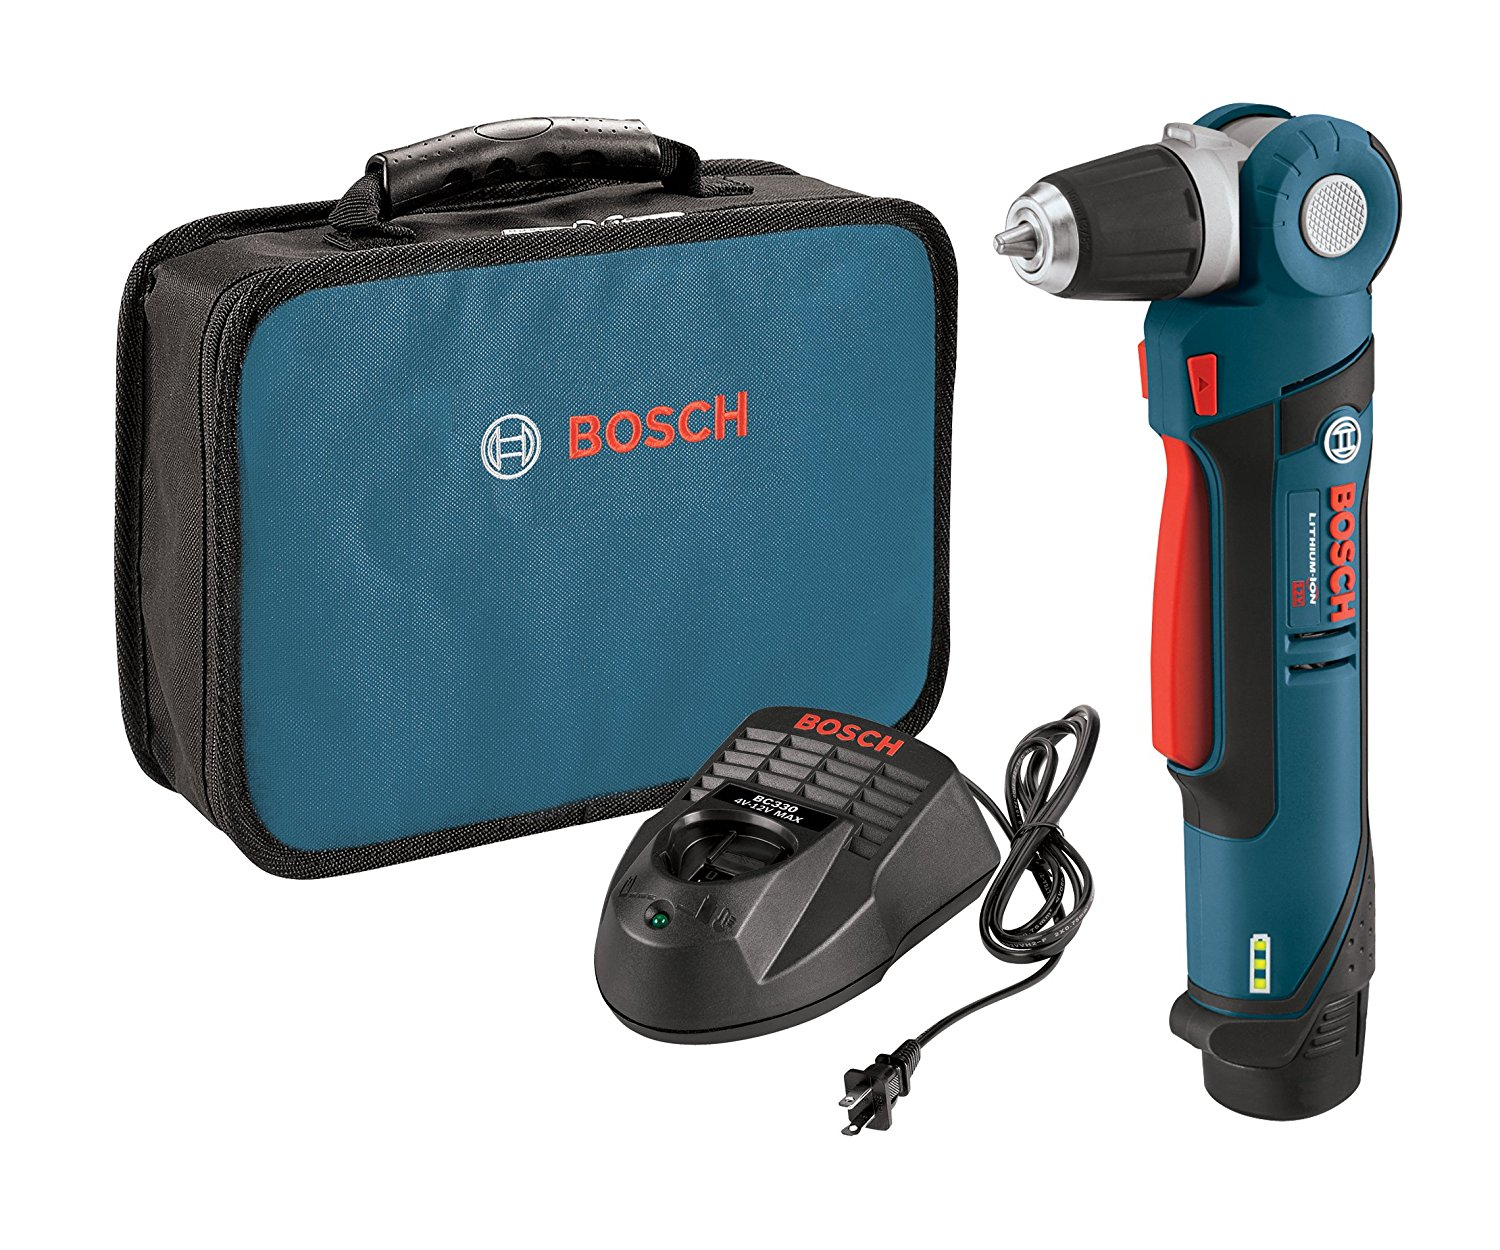 bosch ps11 2a vs makita xph102 detailed comparison as of. Black Bedroom Furniture Sets. Home Design Ideas